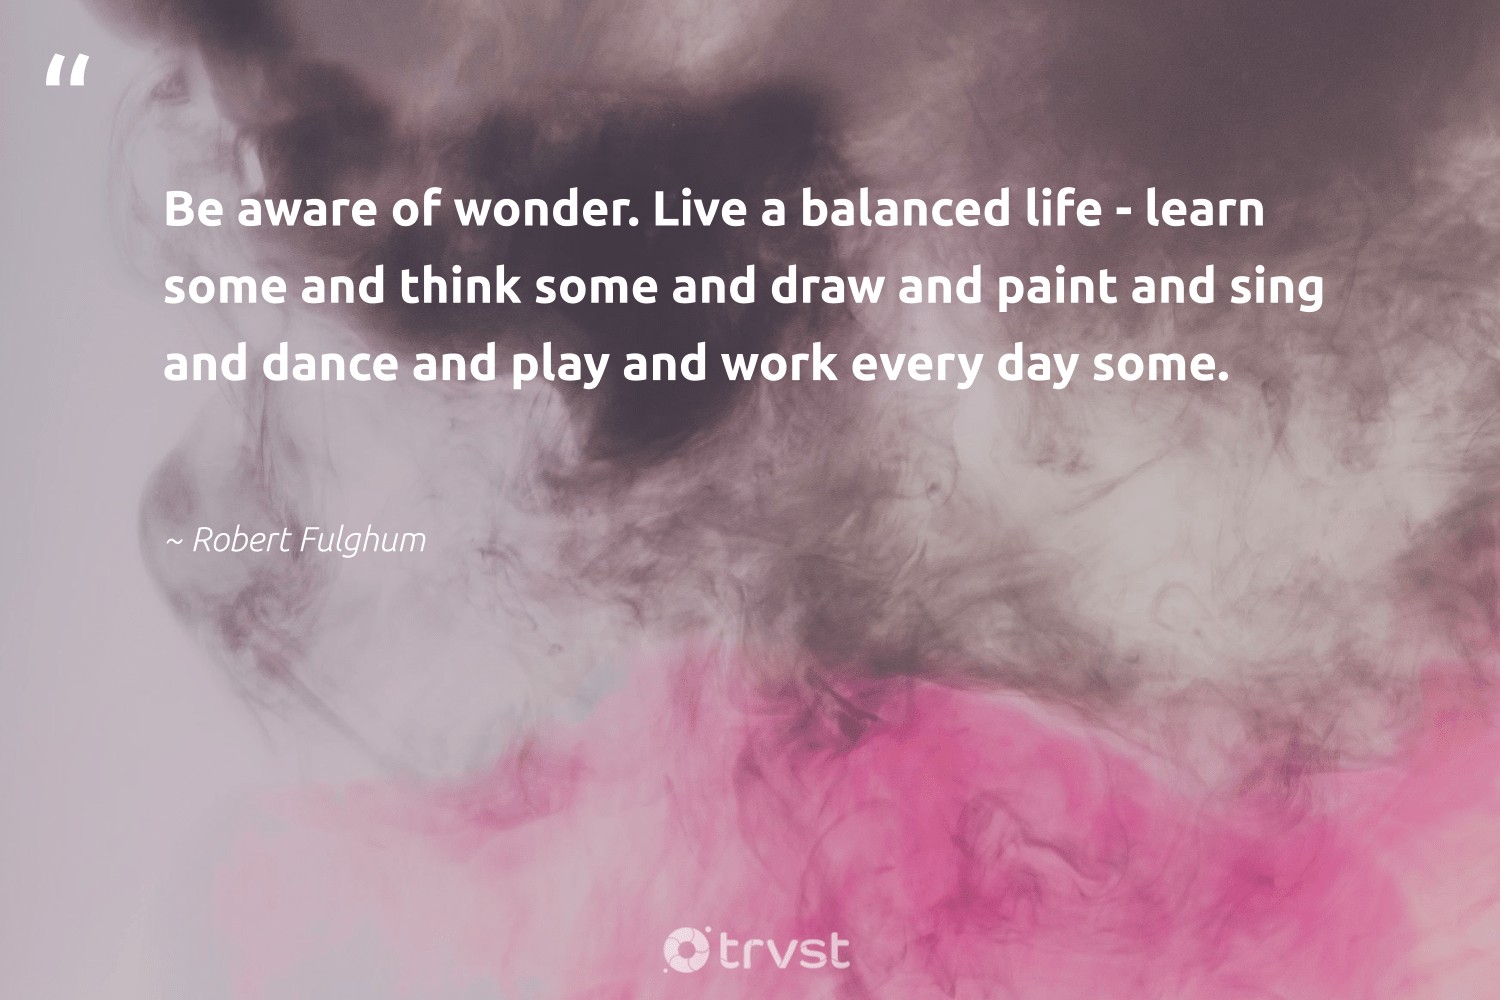 """Be aware of wonder. Live a balanced life - learn some and think some and draw and paint and sing and dance and play and work every day some.""  - Robert Fulghum #trvst #quotes #nevergiveup #dosomething #softskills #beinspired #futureofwork #collectiveaction #begreat #gogreen #impact #socialimpact"